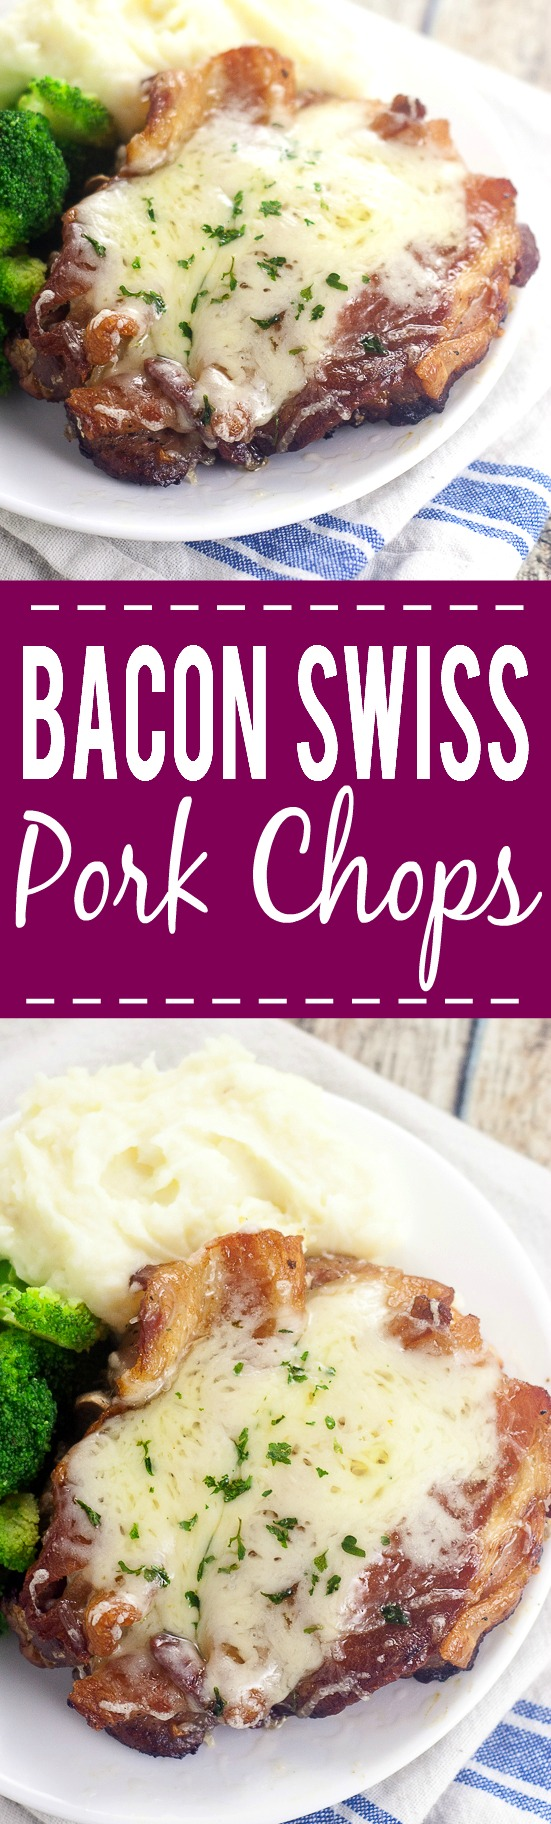 Bacon Swiss Pork Chops Recipe - Juicy pork chops topped with bacon and cheese. This 5 ingredient Bacon Swiss Pork Chops recipe is quick and easy and an instant family favorite! Love this easy family dinner recipe! Can't go wrong with bacon!